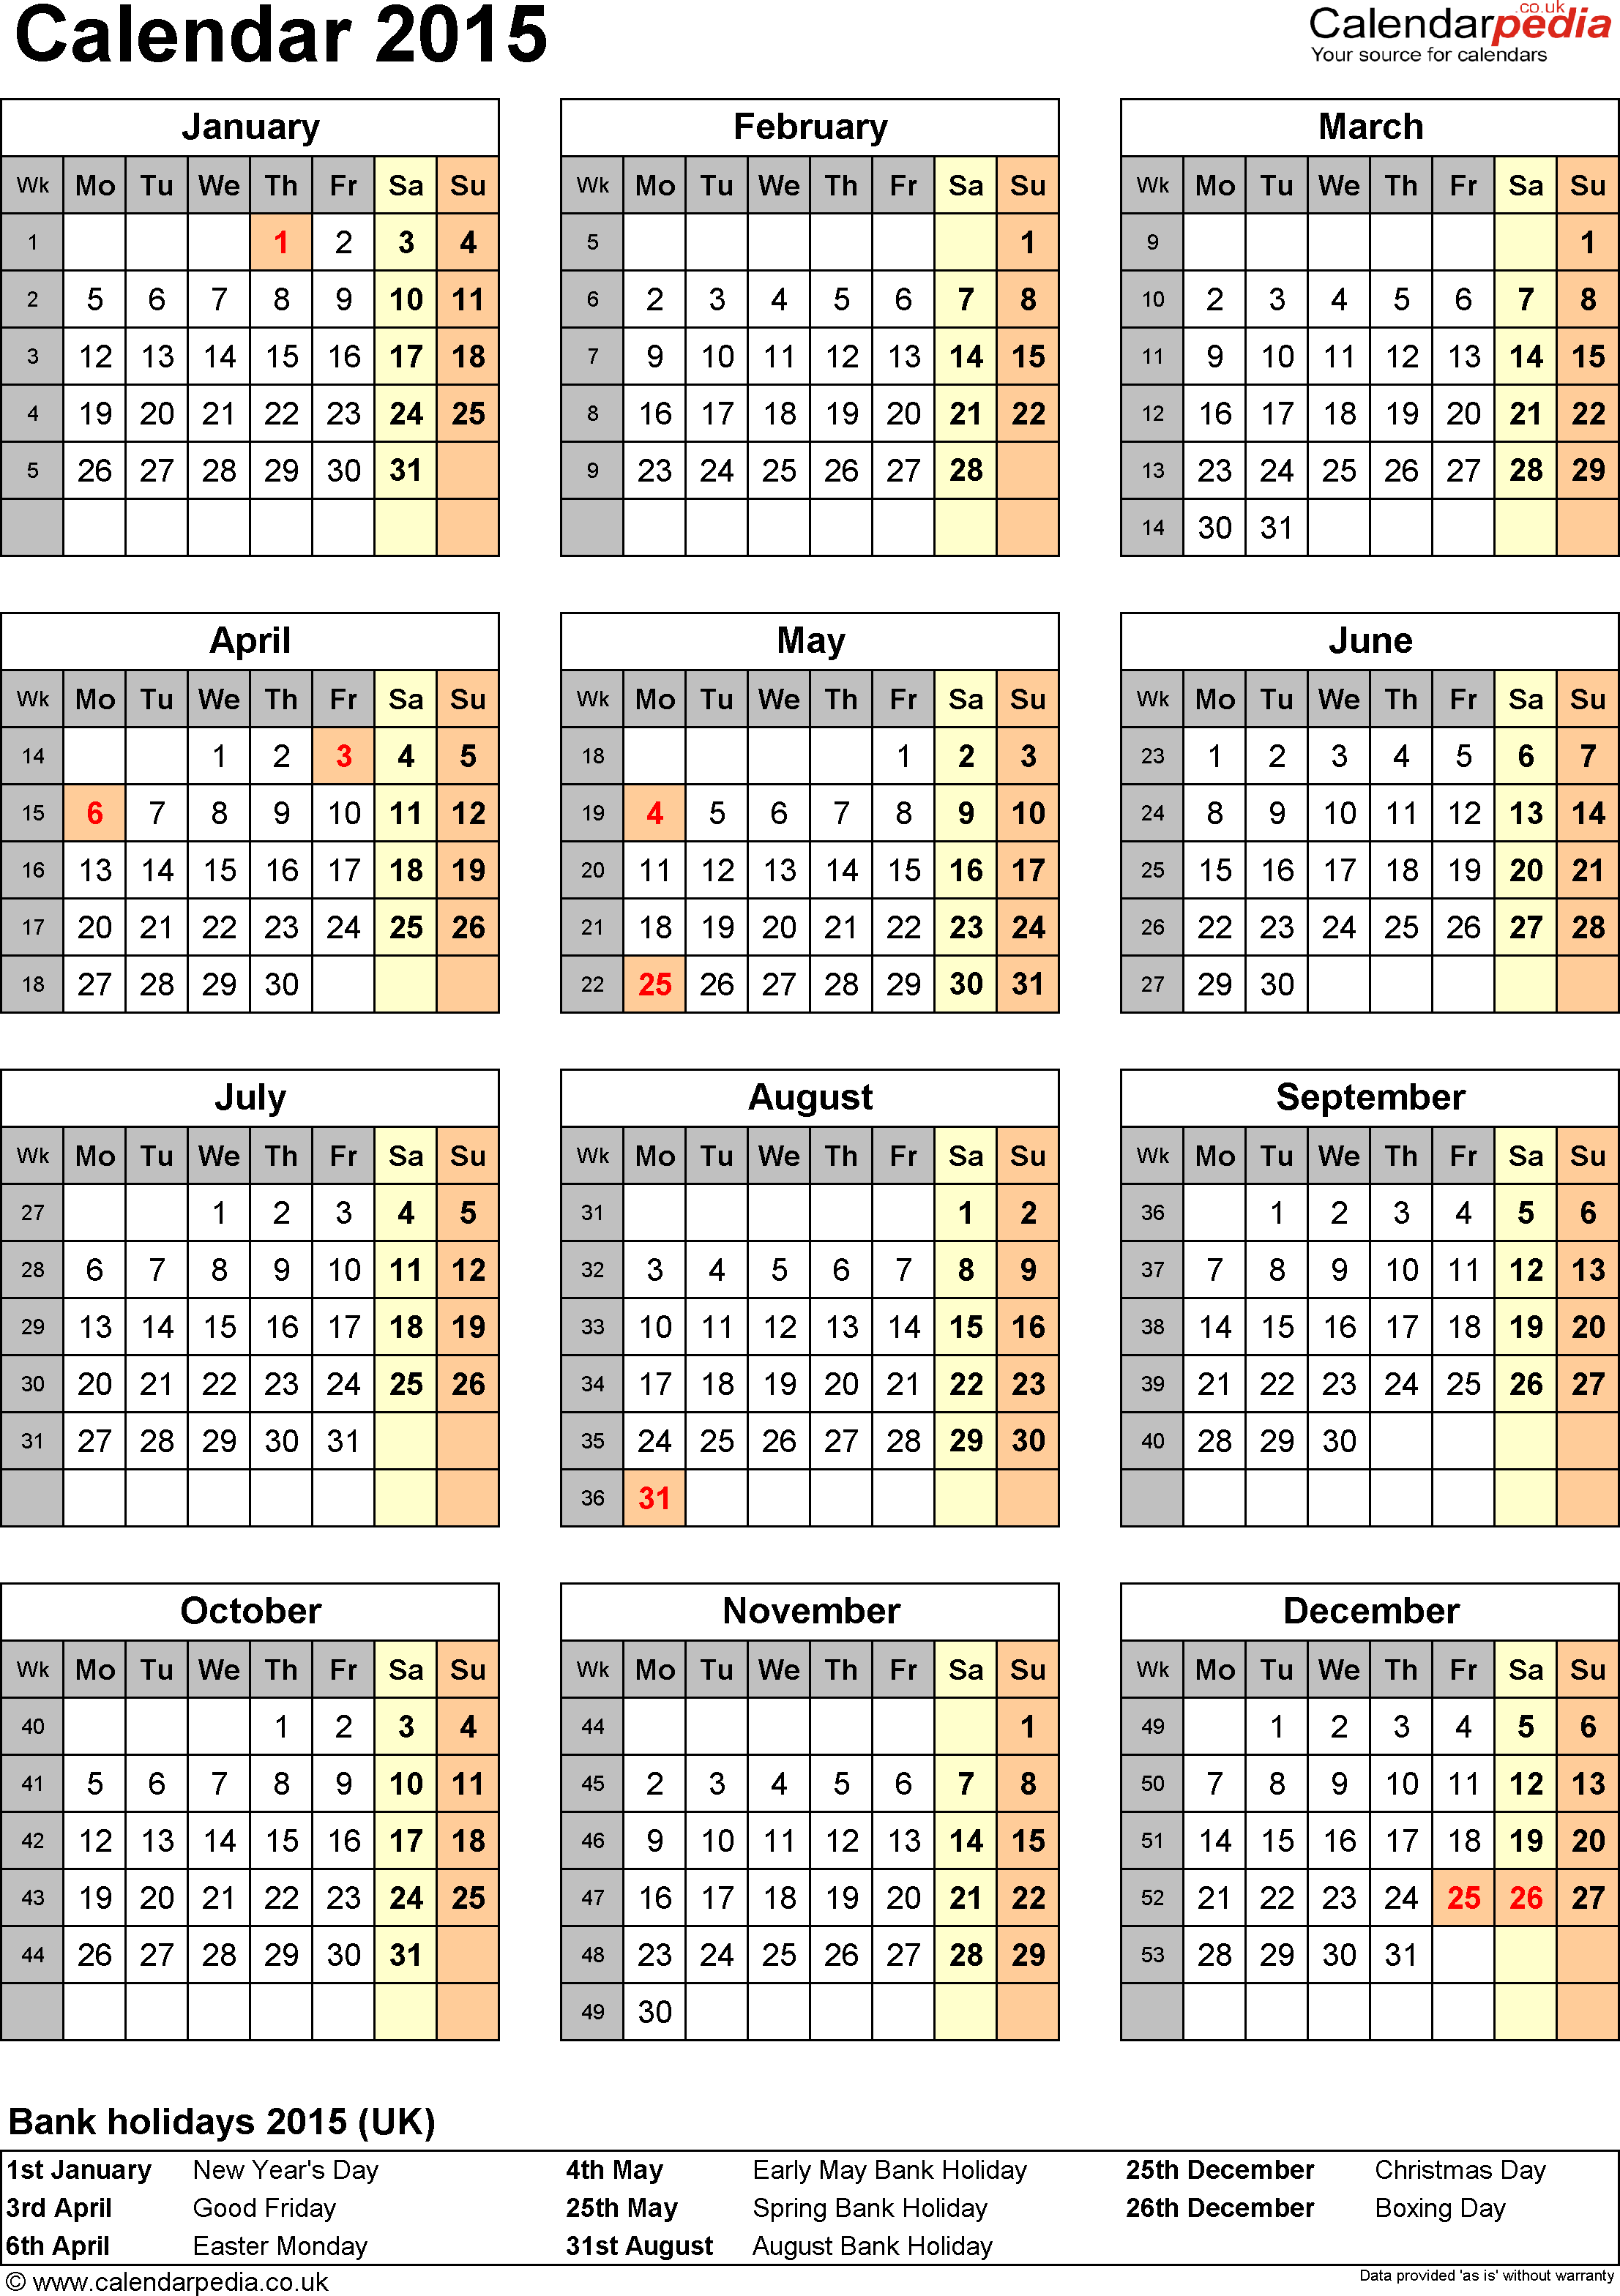 Download Template 15: Yearly calendar 2015 as Excel template, year overview, one A4 page